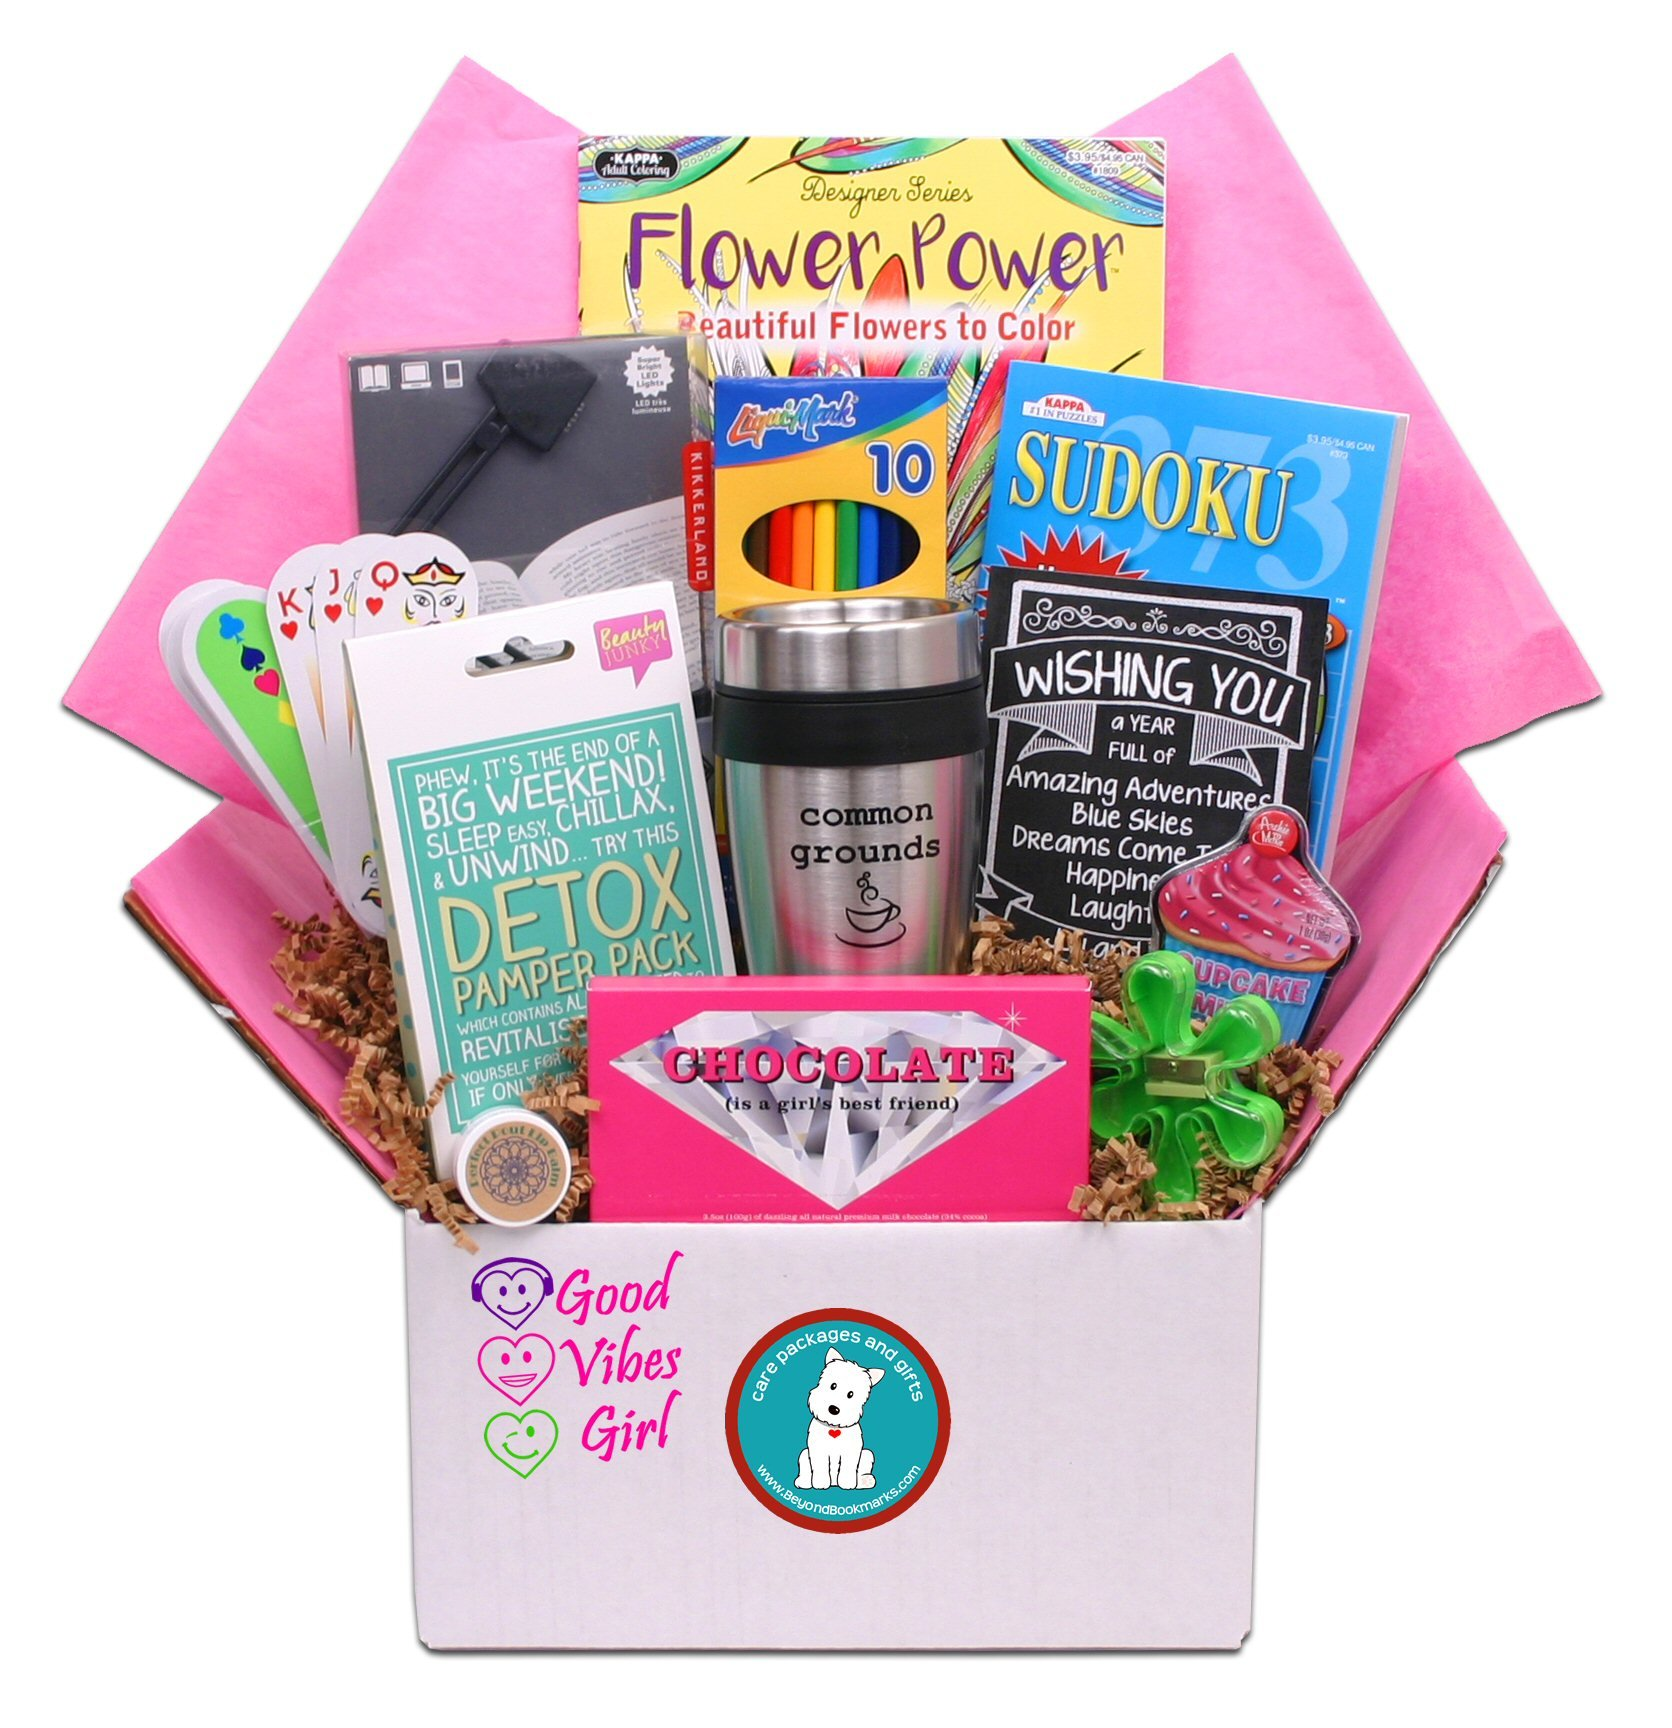 Good Vibes Gift Box Care Package Surprise